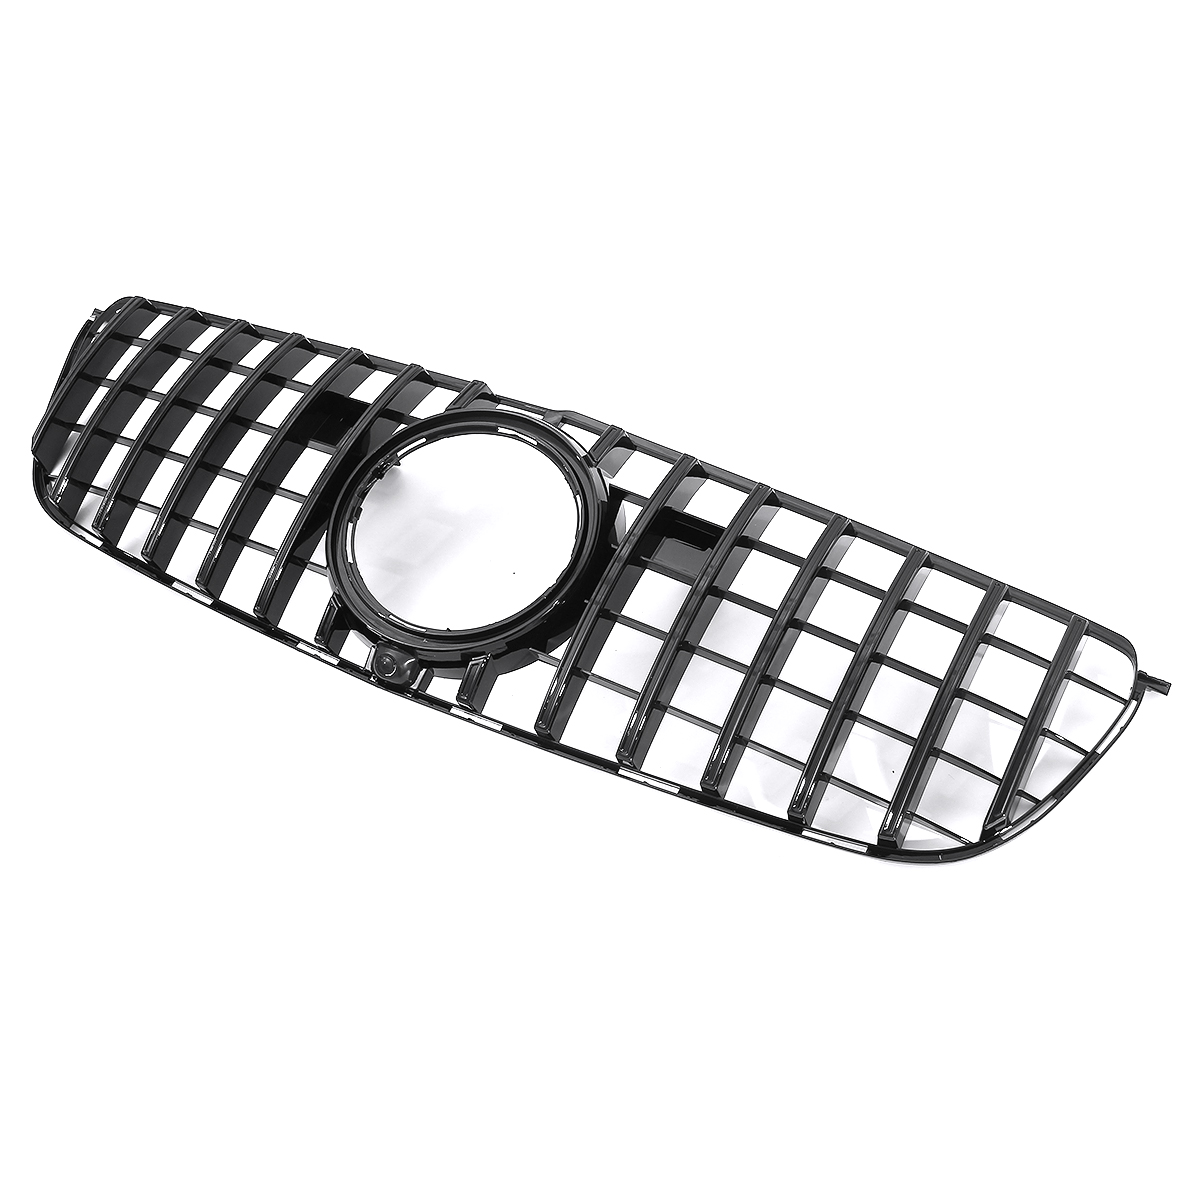 Glossy black gtr style front grill grille for mercedes